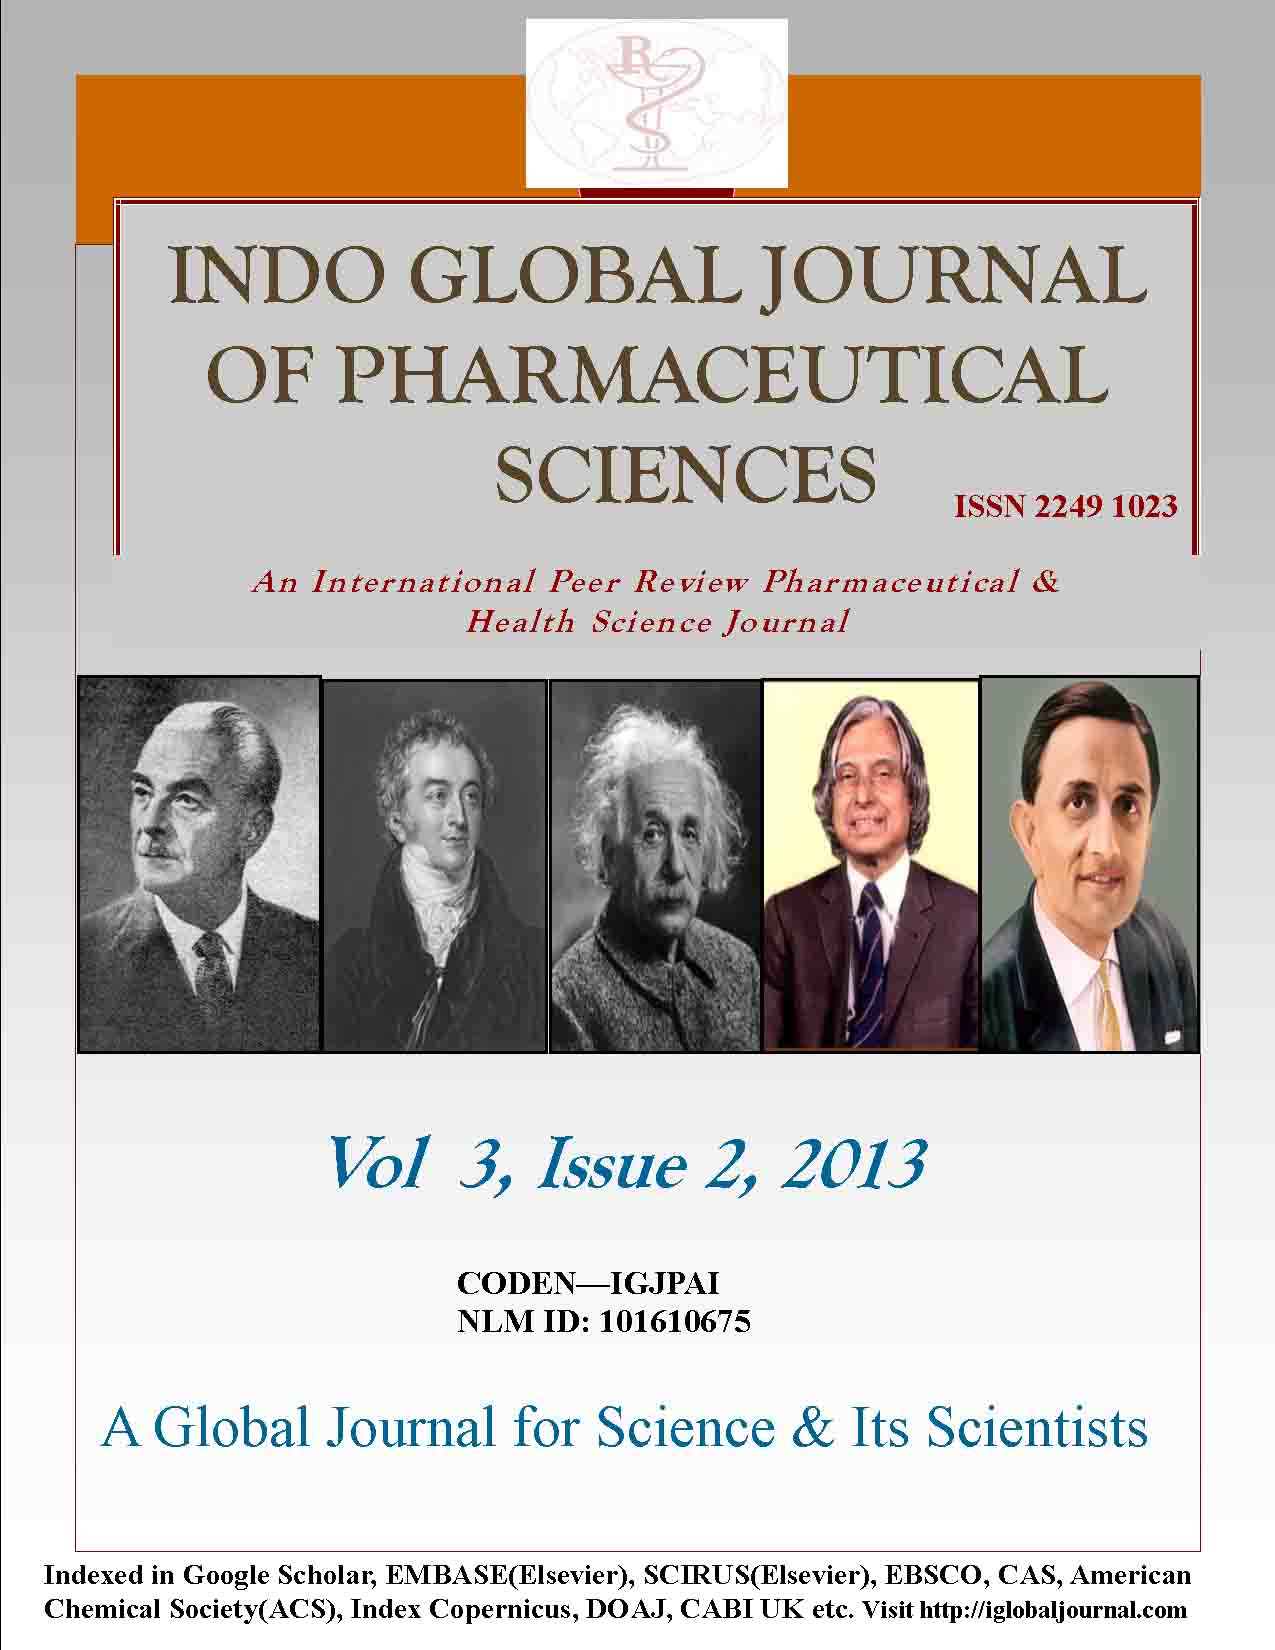 IGJPS, Vol 3, Issue 2, 2013 Cover Page